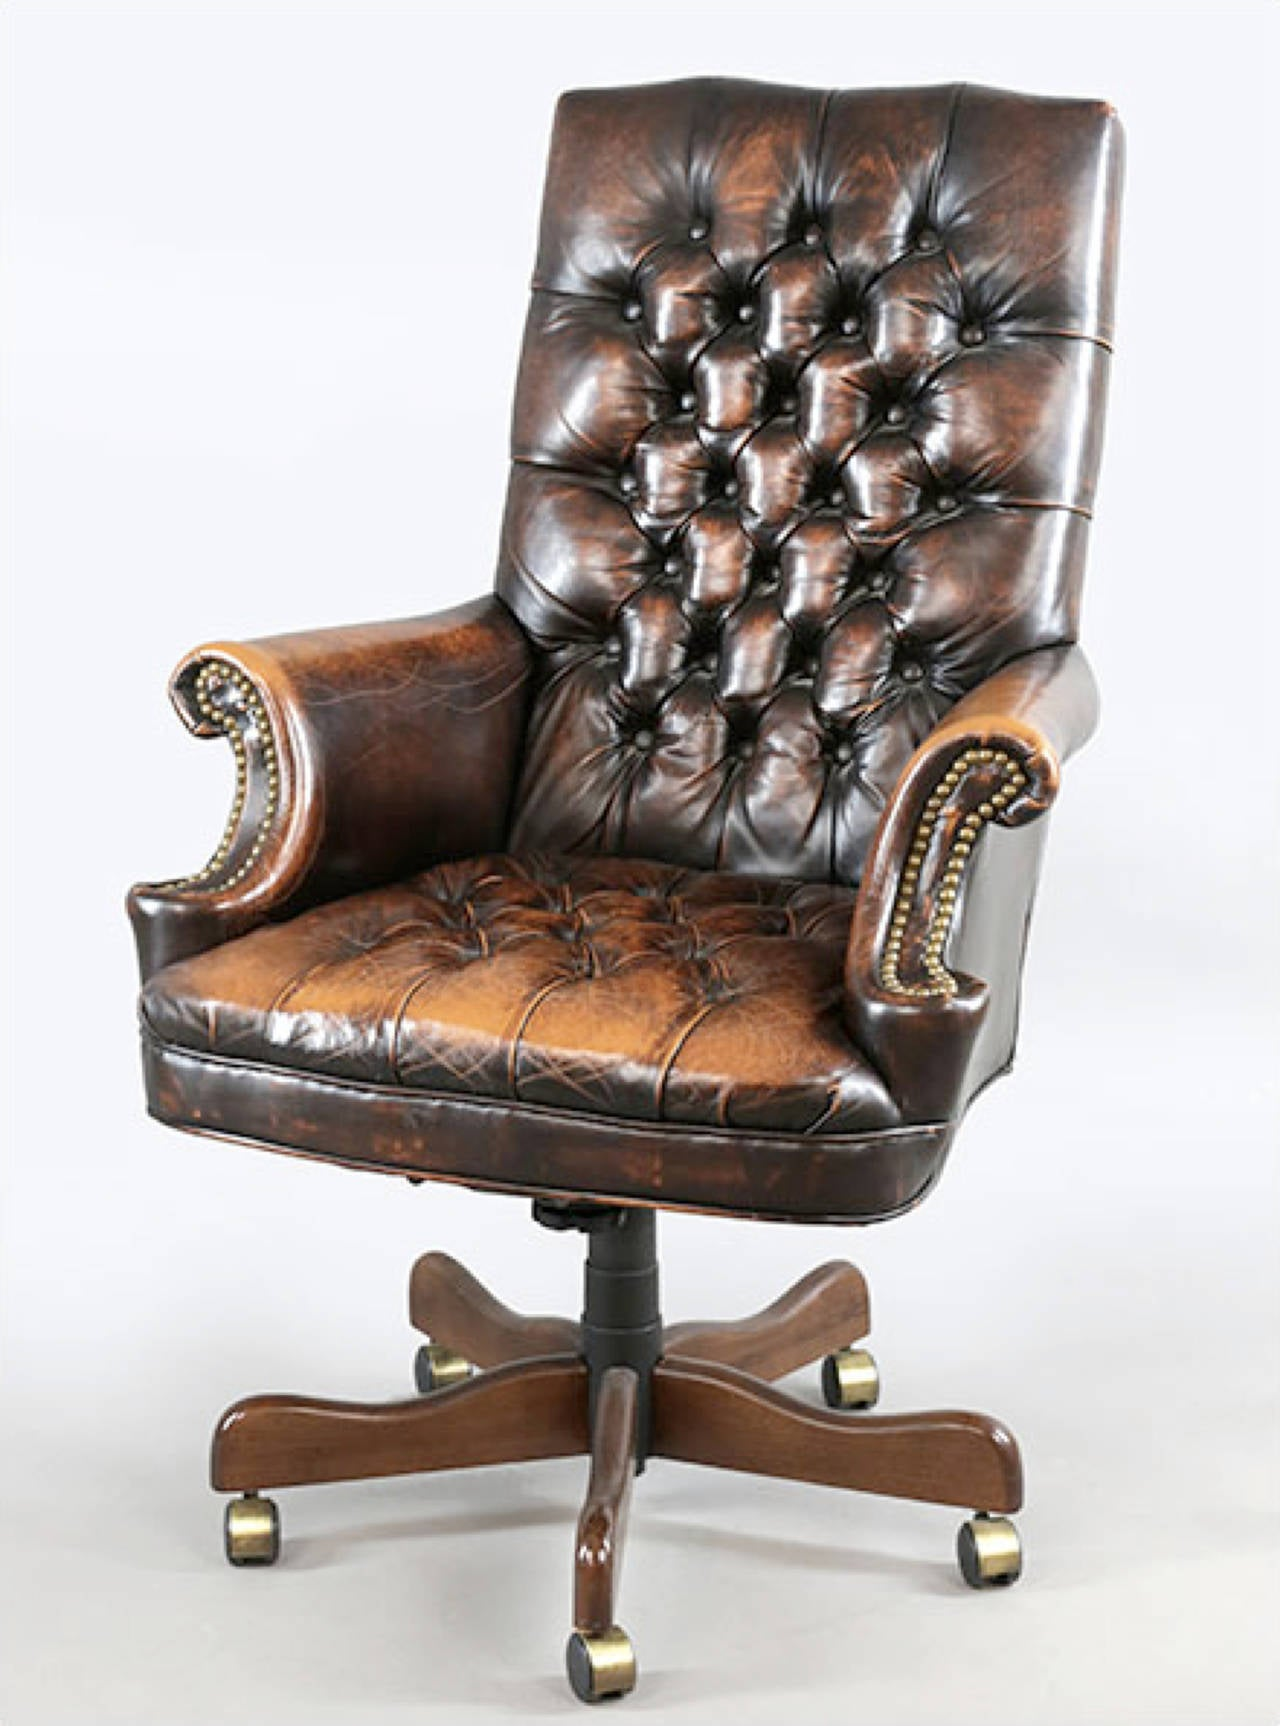 Executive Leather Chair Leather Executive Chair With Worn Patina